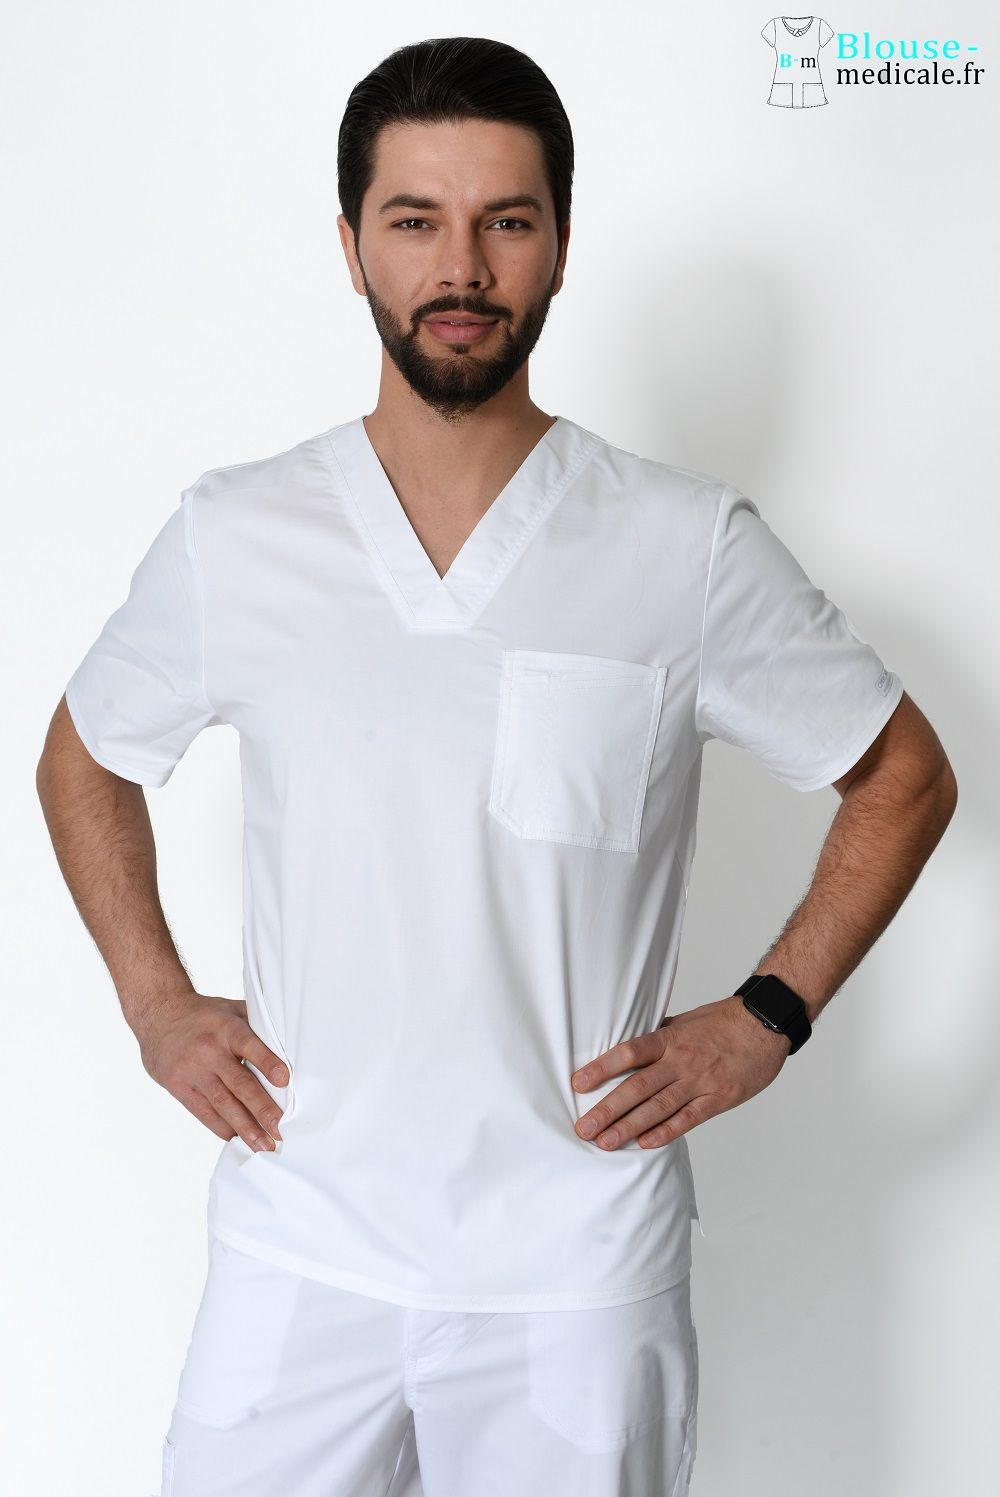 blouse medicale homme couleur cherokee blanc